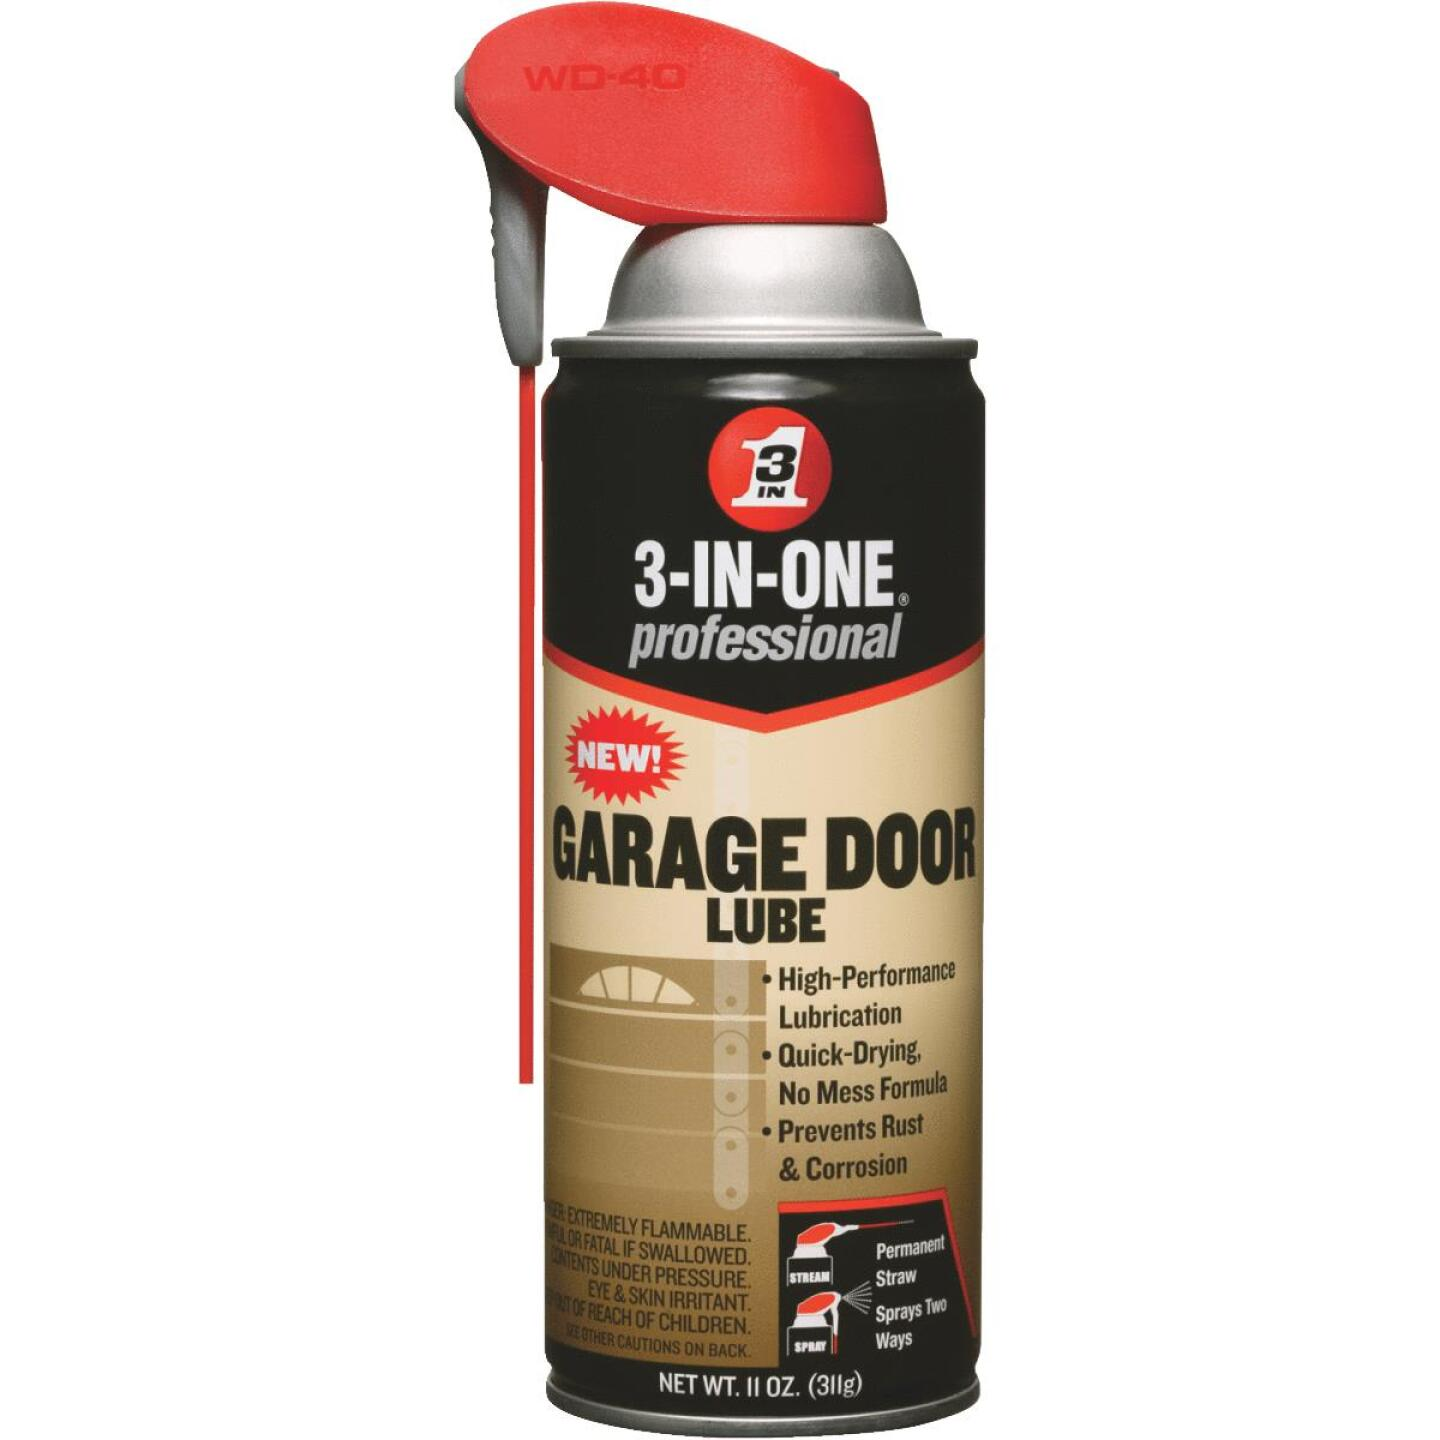 3-IN-ONE 11 Oz. Aerosol with Straw Garage Door Multi-Purpose Lubricant Image 1